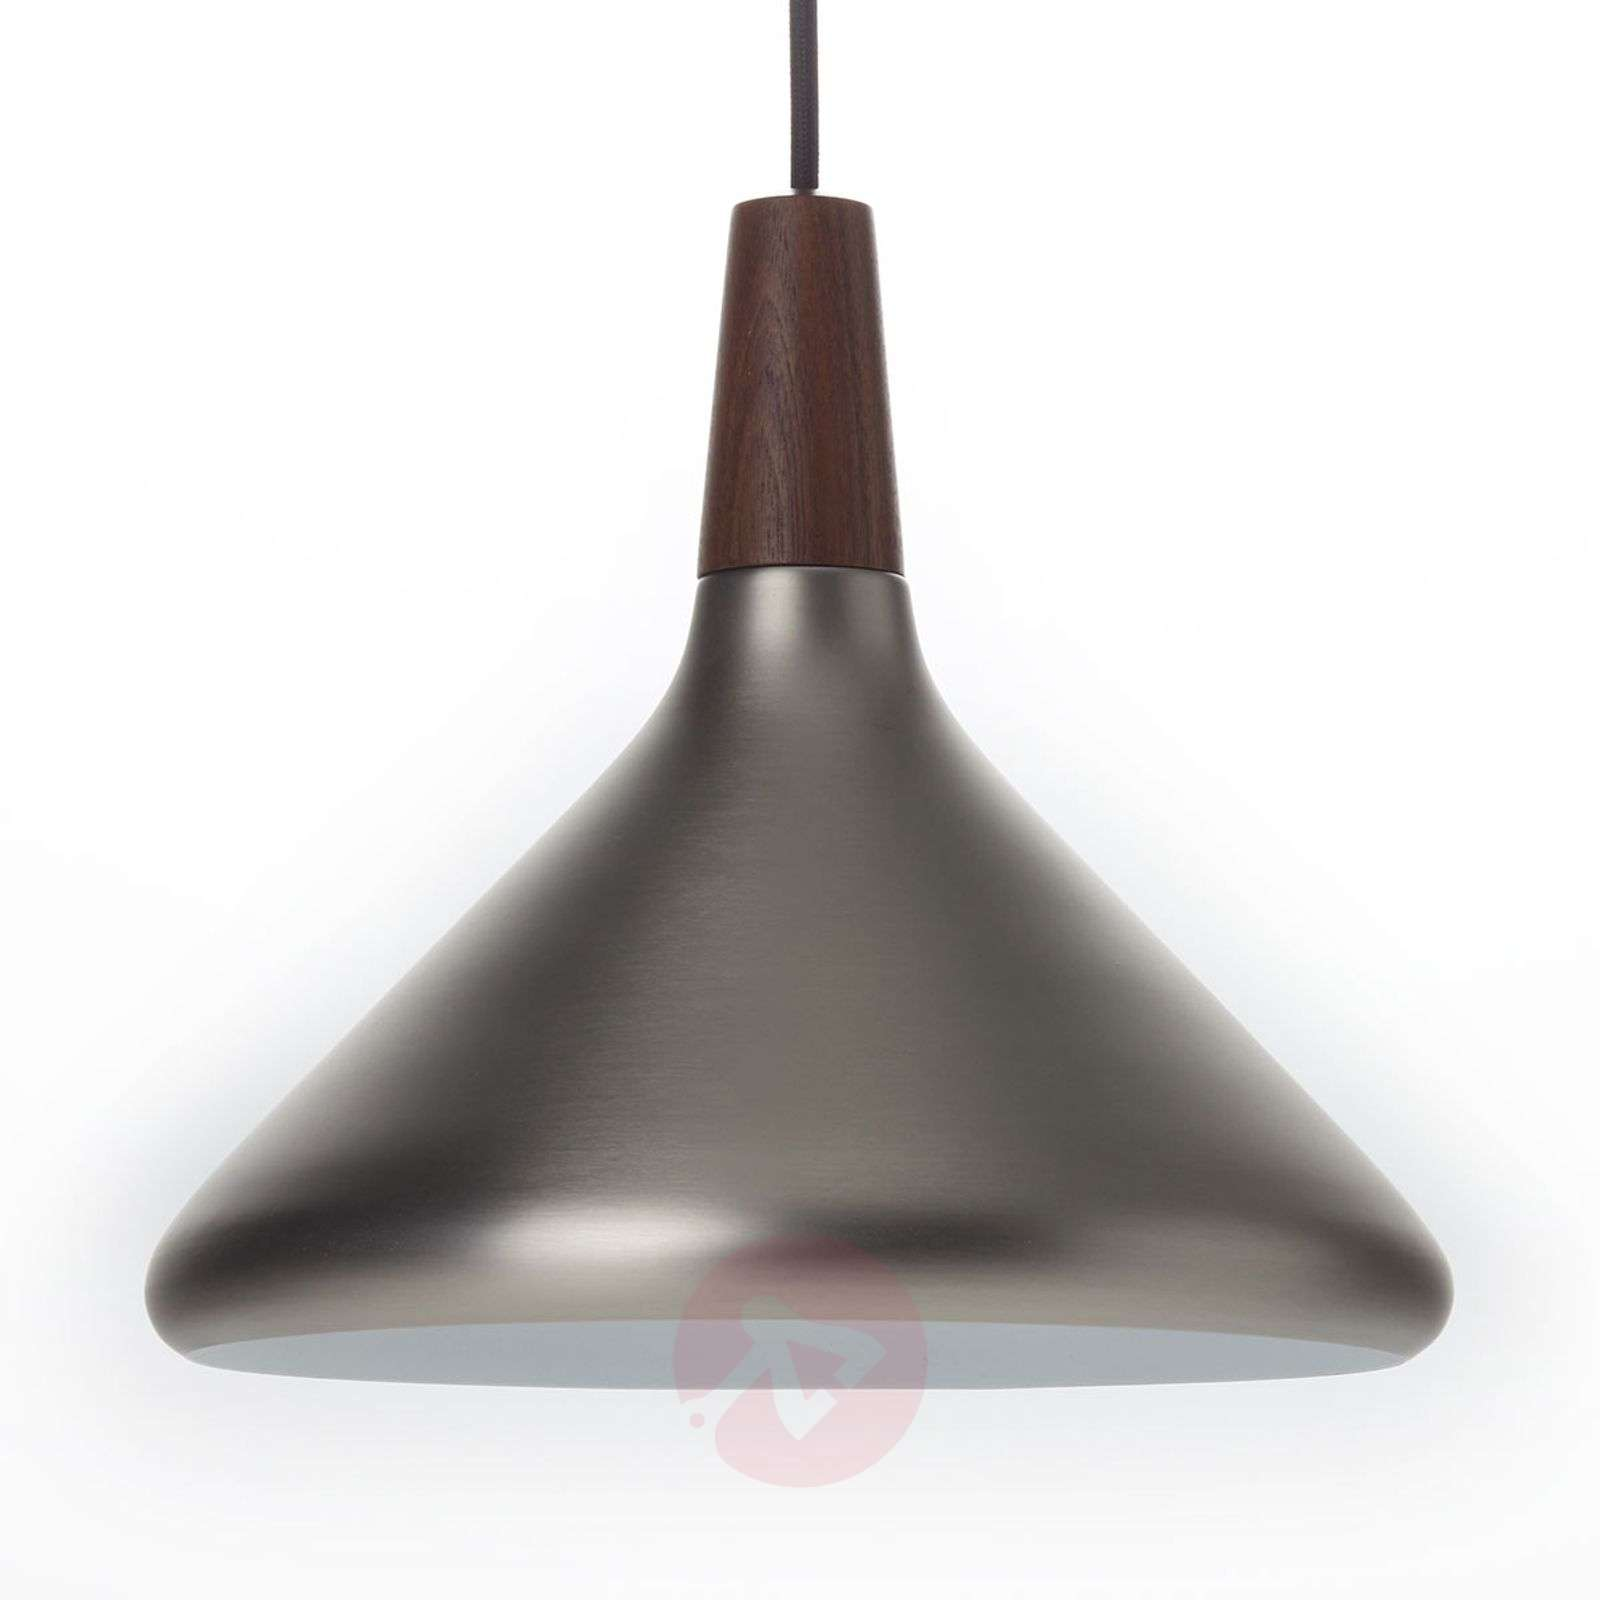 Pendant lamp Float in brushed steel, 27 cm-7005905-03